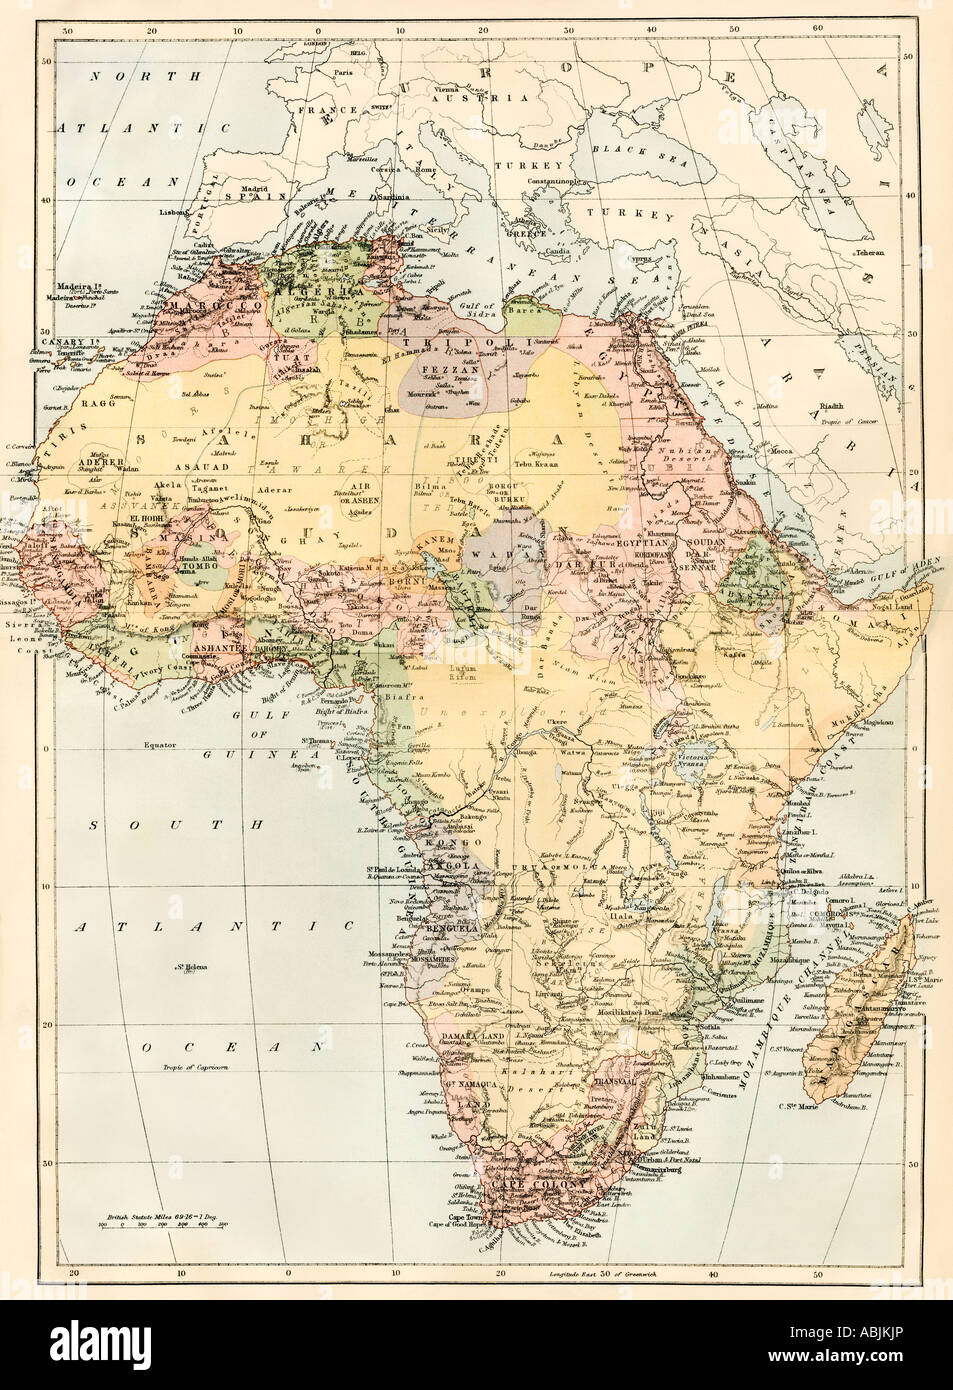 Map of Africa in the 1870s. Color lithograph - Stock Image